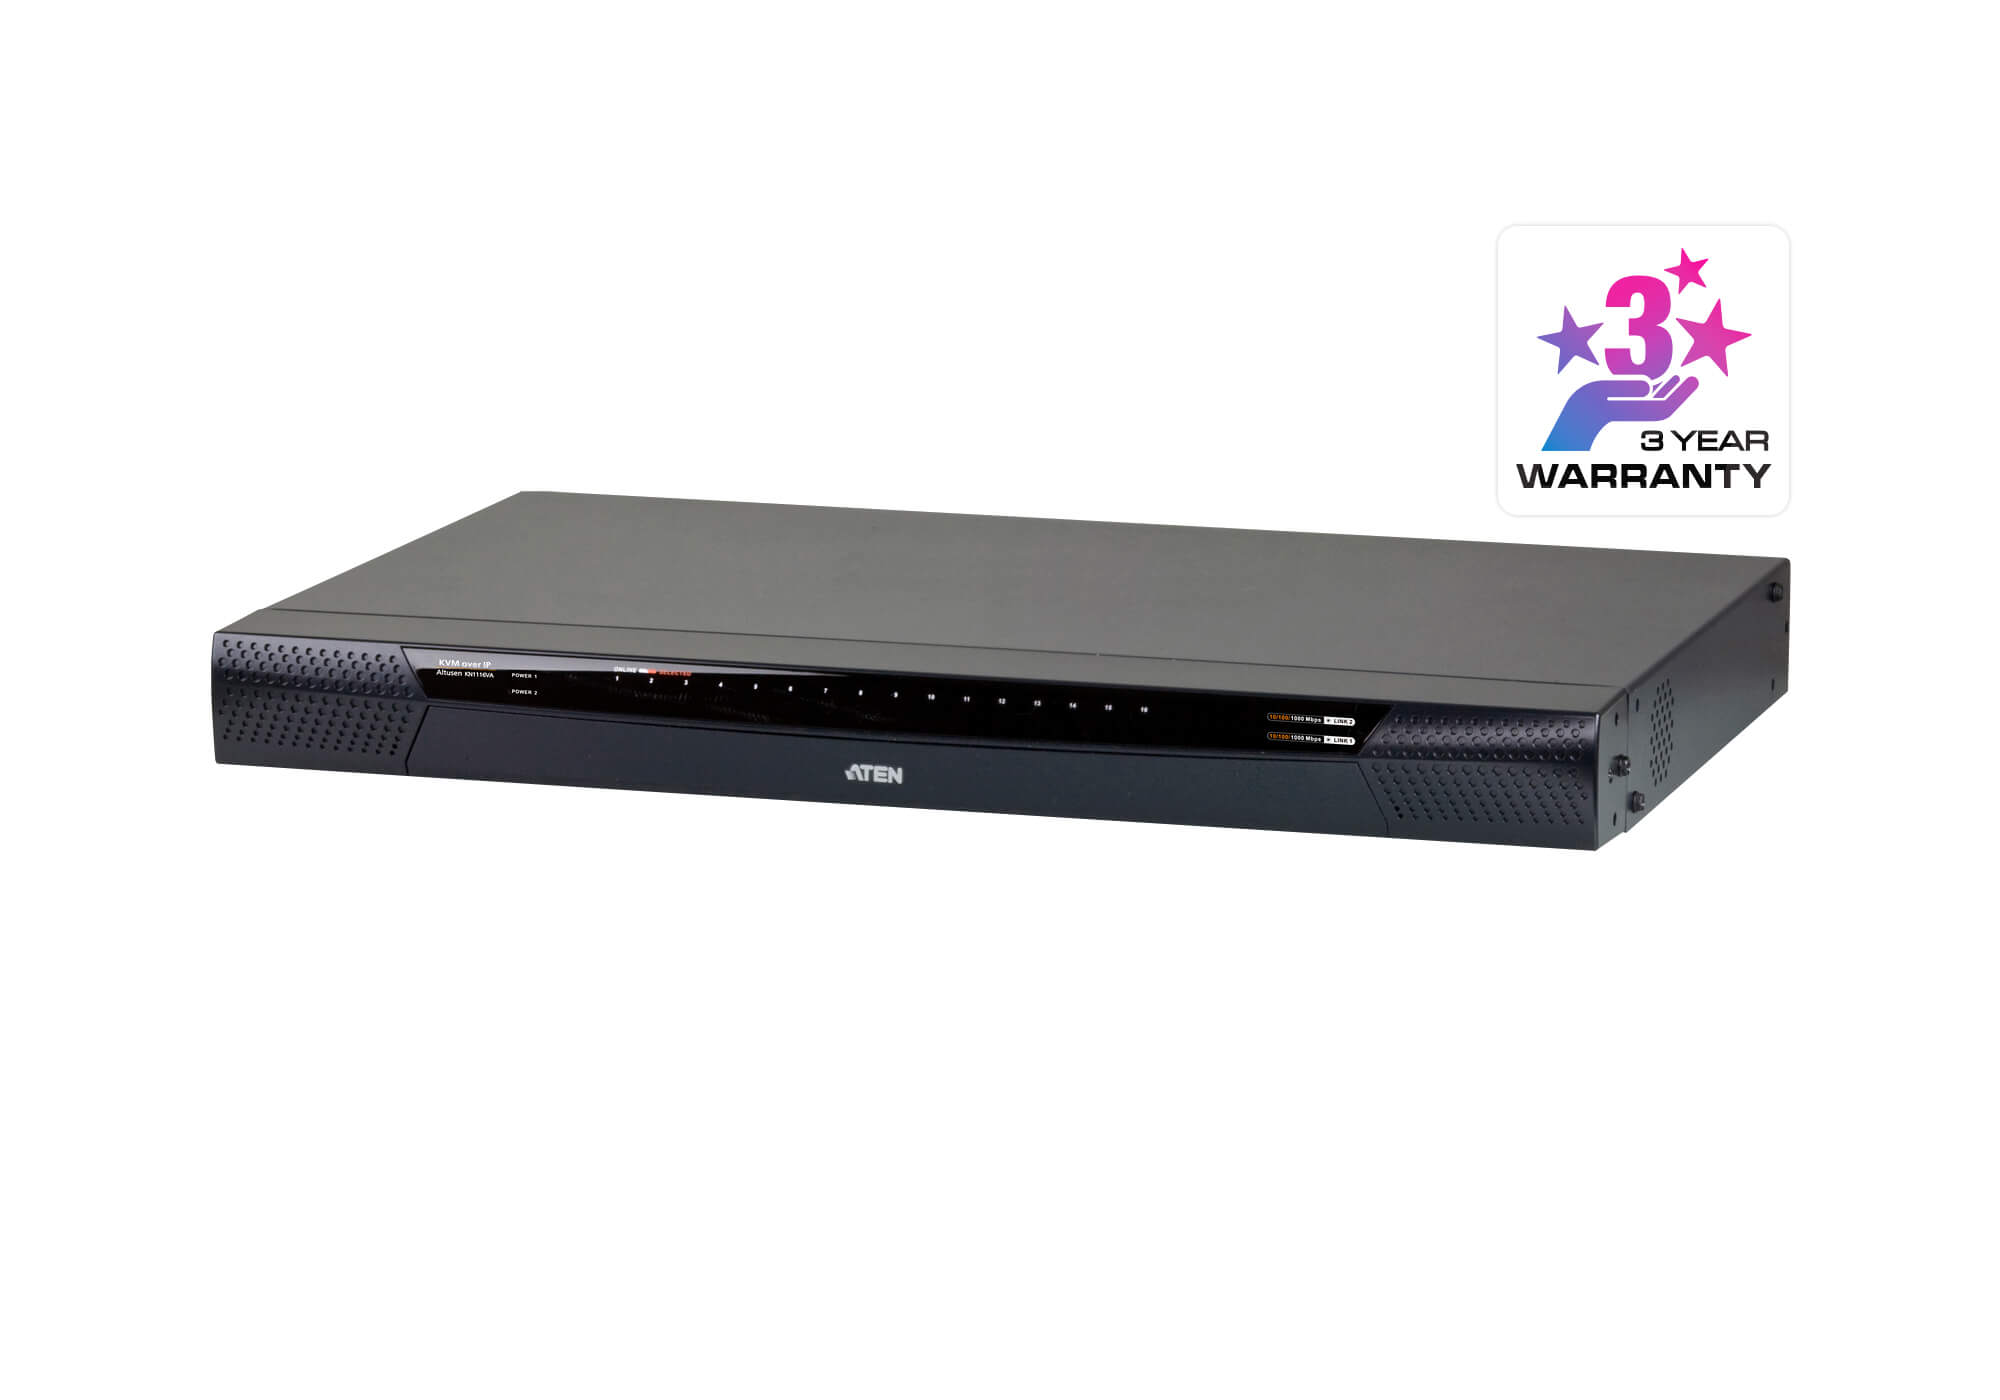 1-Local/1-Remote Access 16-Port Cat 5 KVM over IP Switch with Virtual Media (1920 x 1200)-1